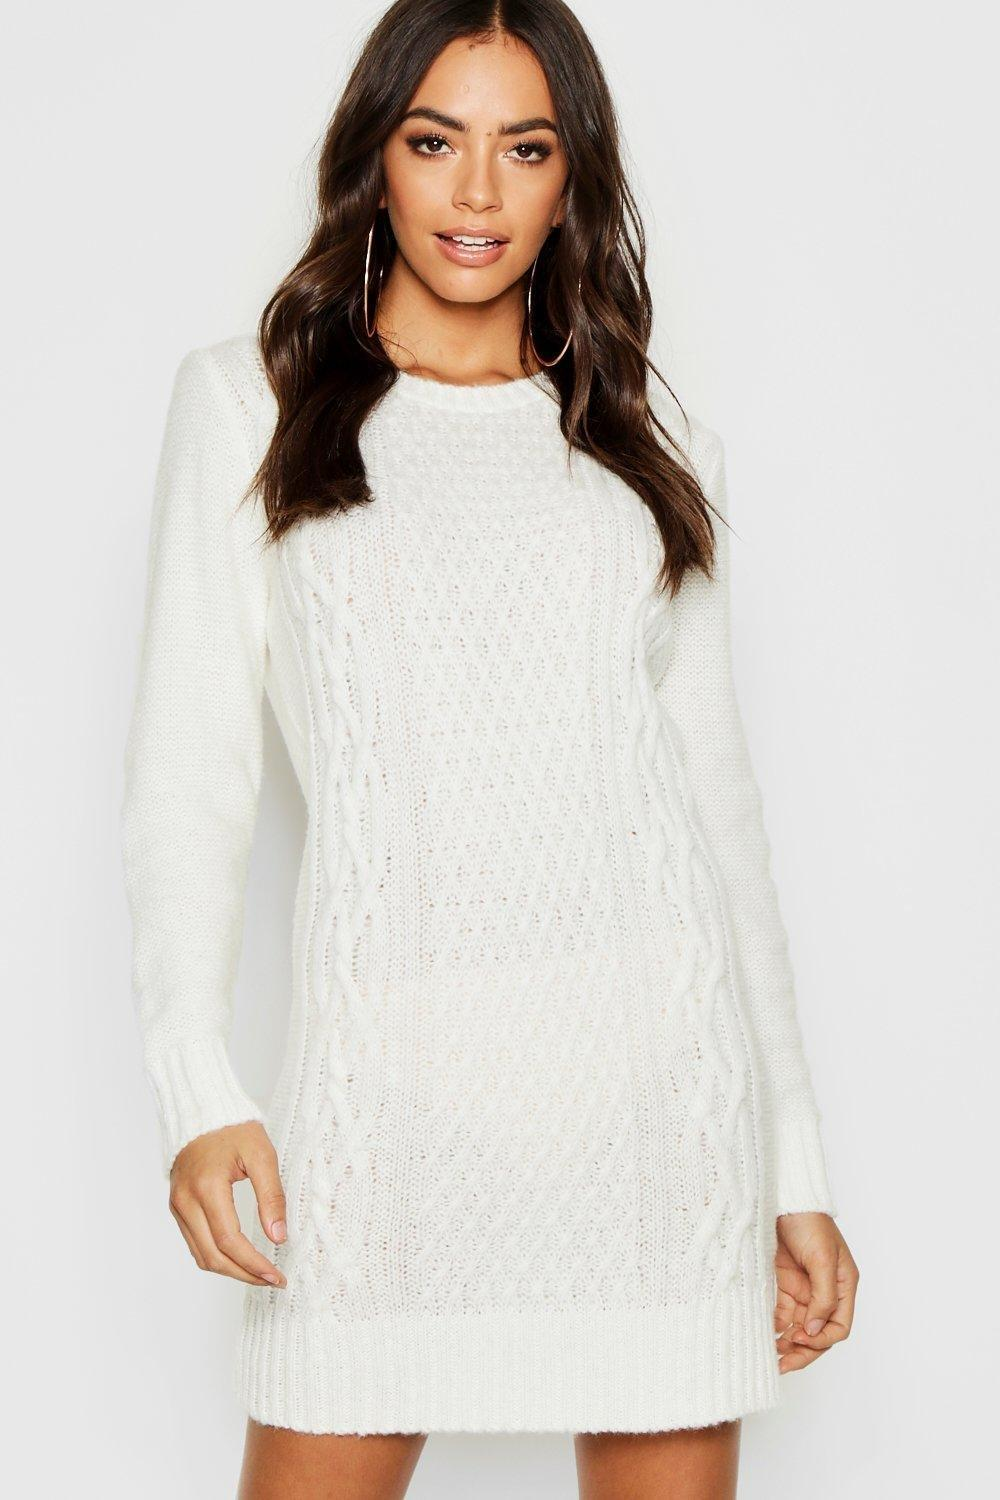 cee37a1e708 Cable Knit Soft Boucle Jumper Dress. Hover to zoom